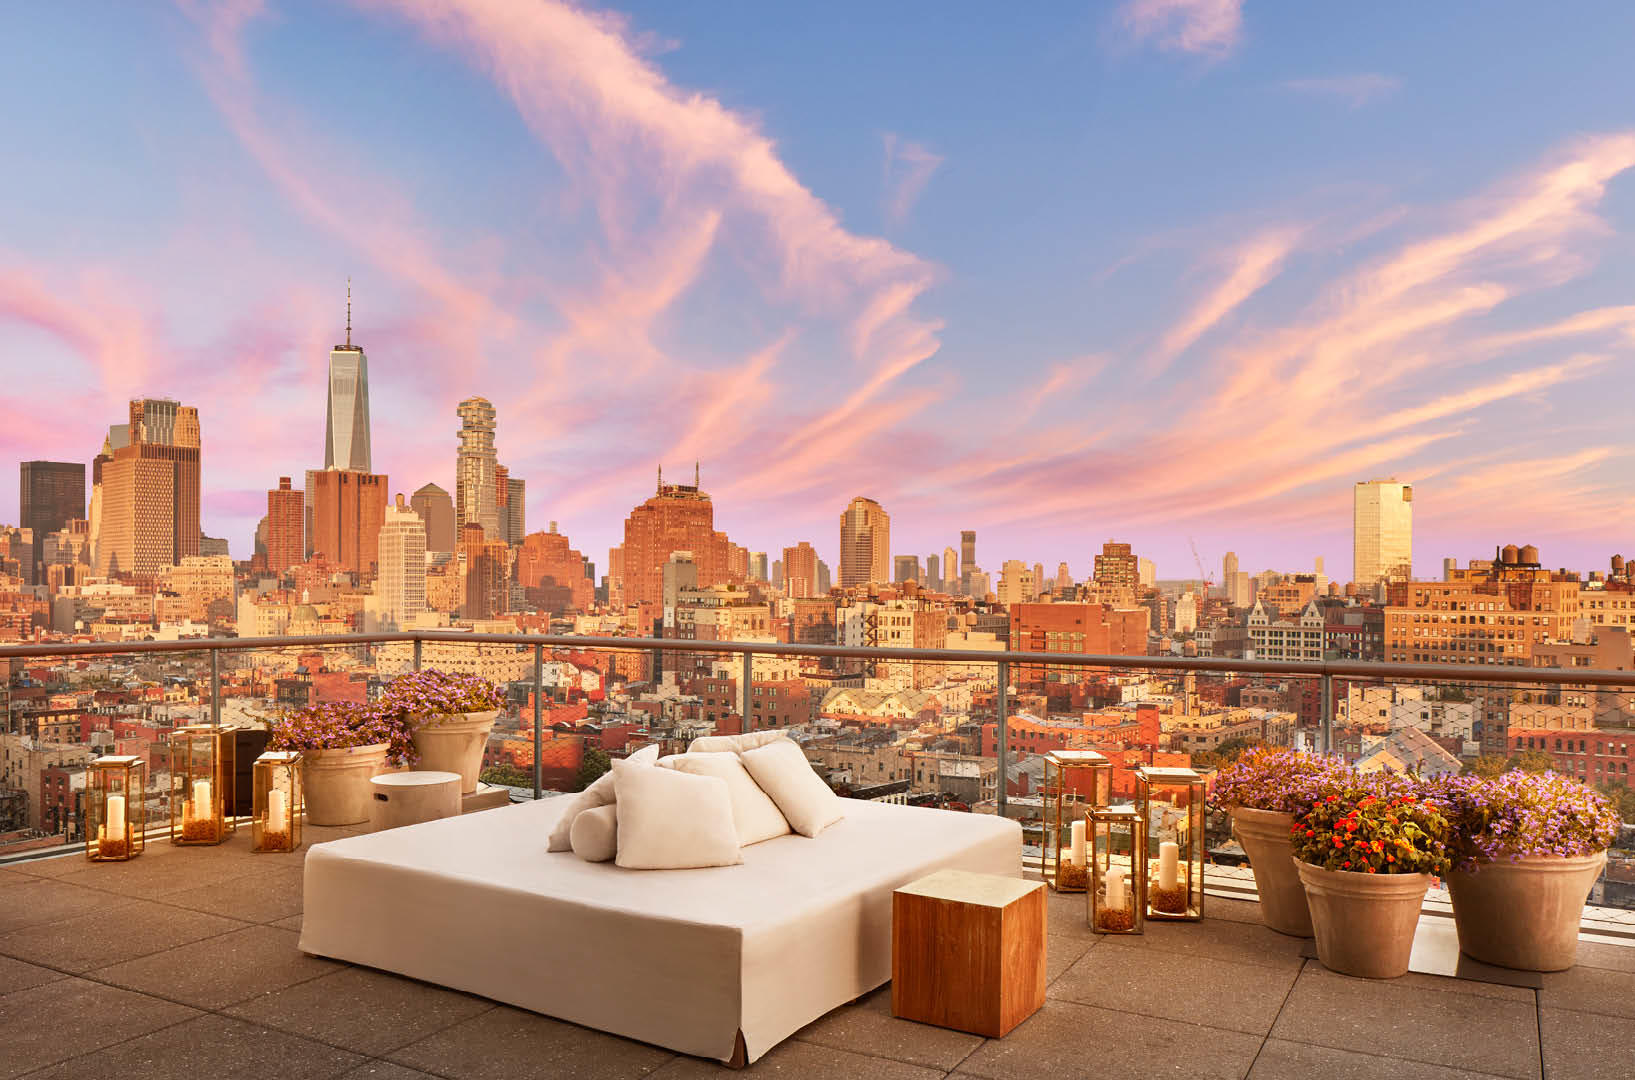 Public Hotel New York City An Ian Schrager Hotel The Roof